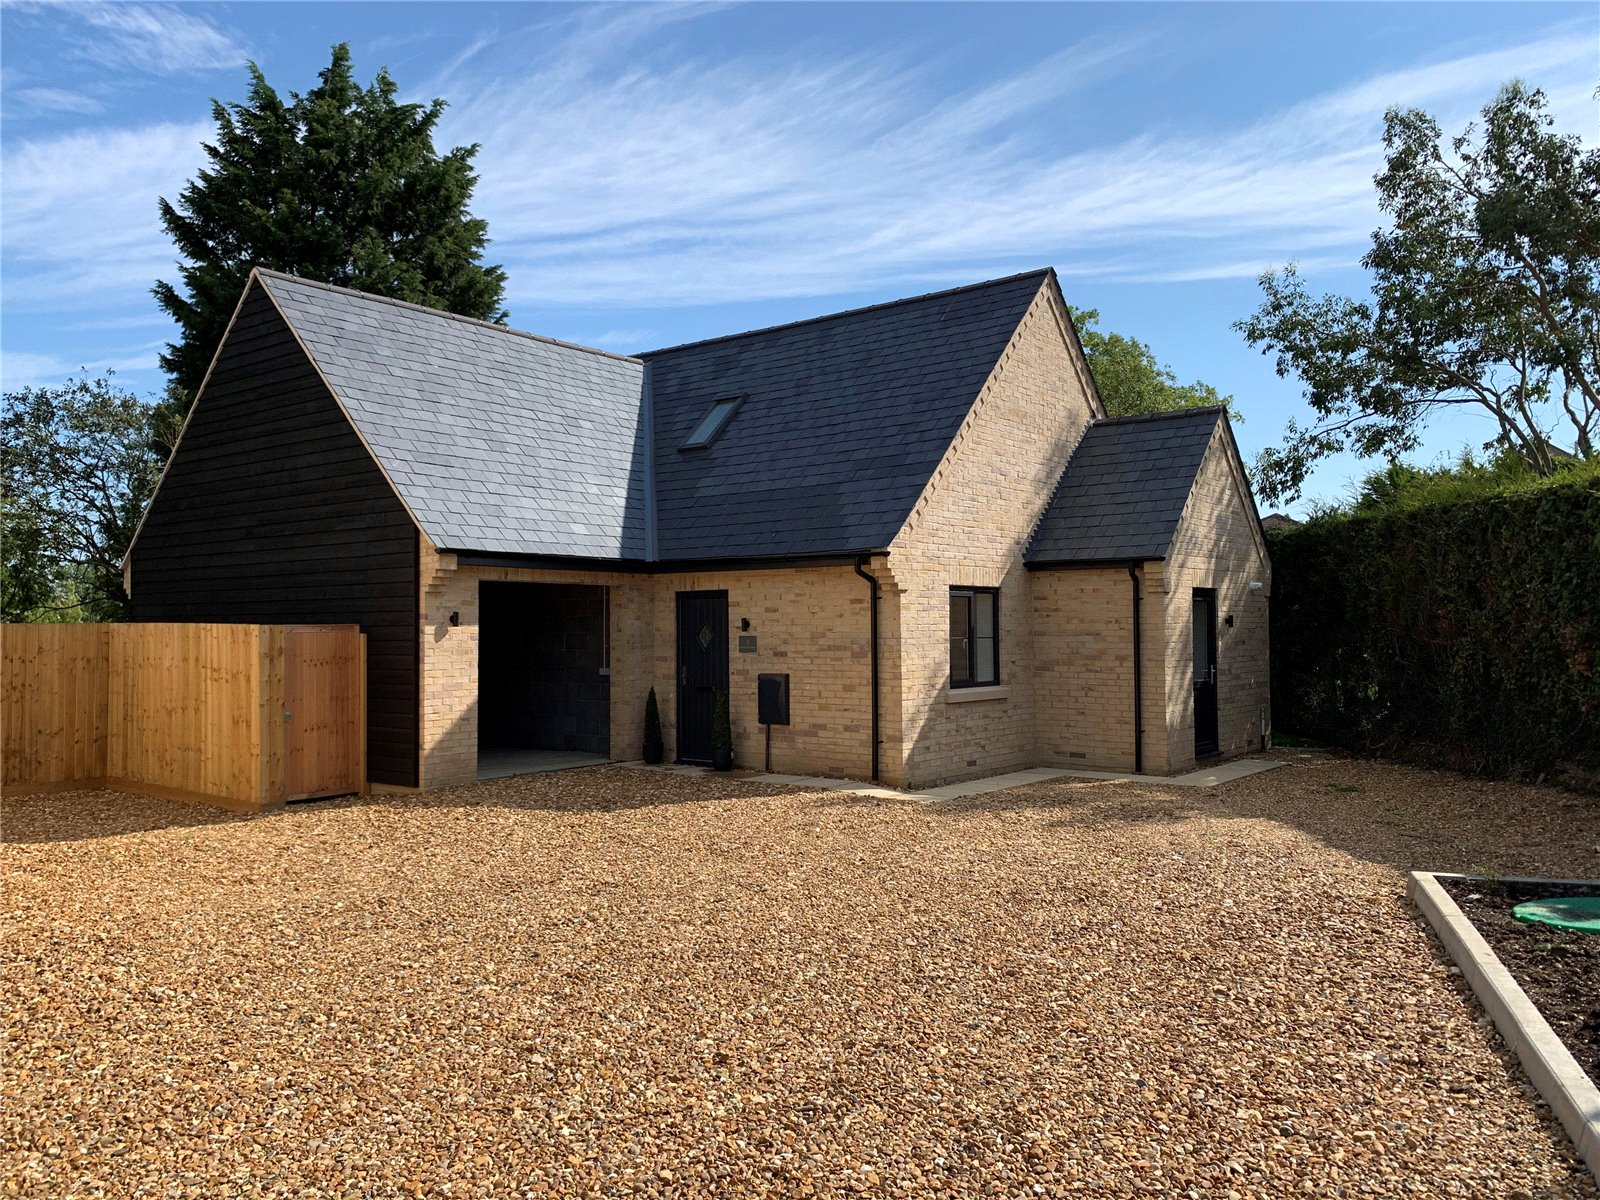 4 bed house for sale in Pidley, PE28 3DD 0